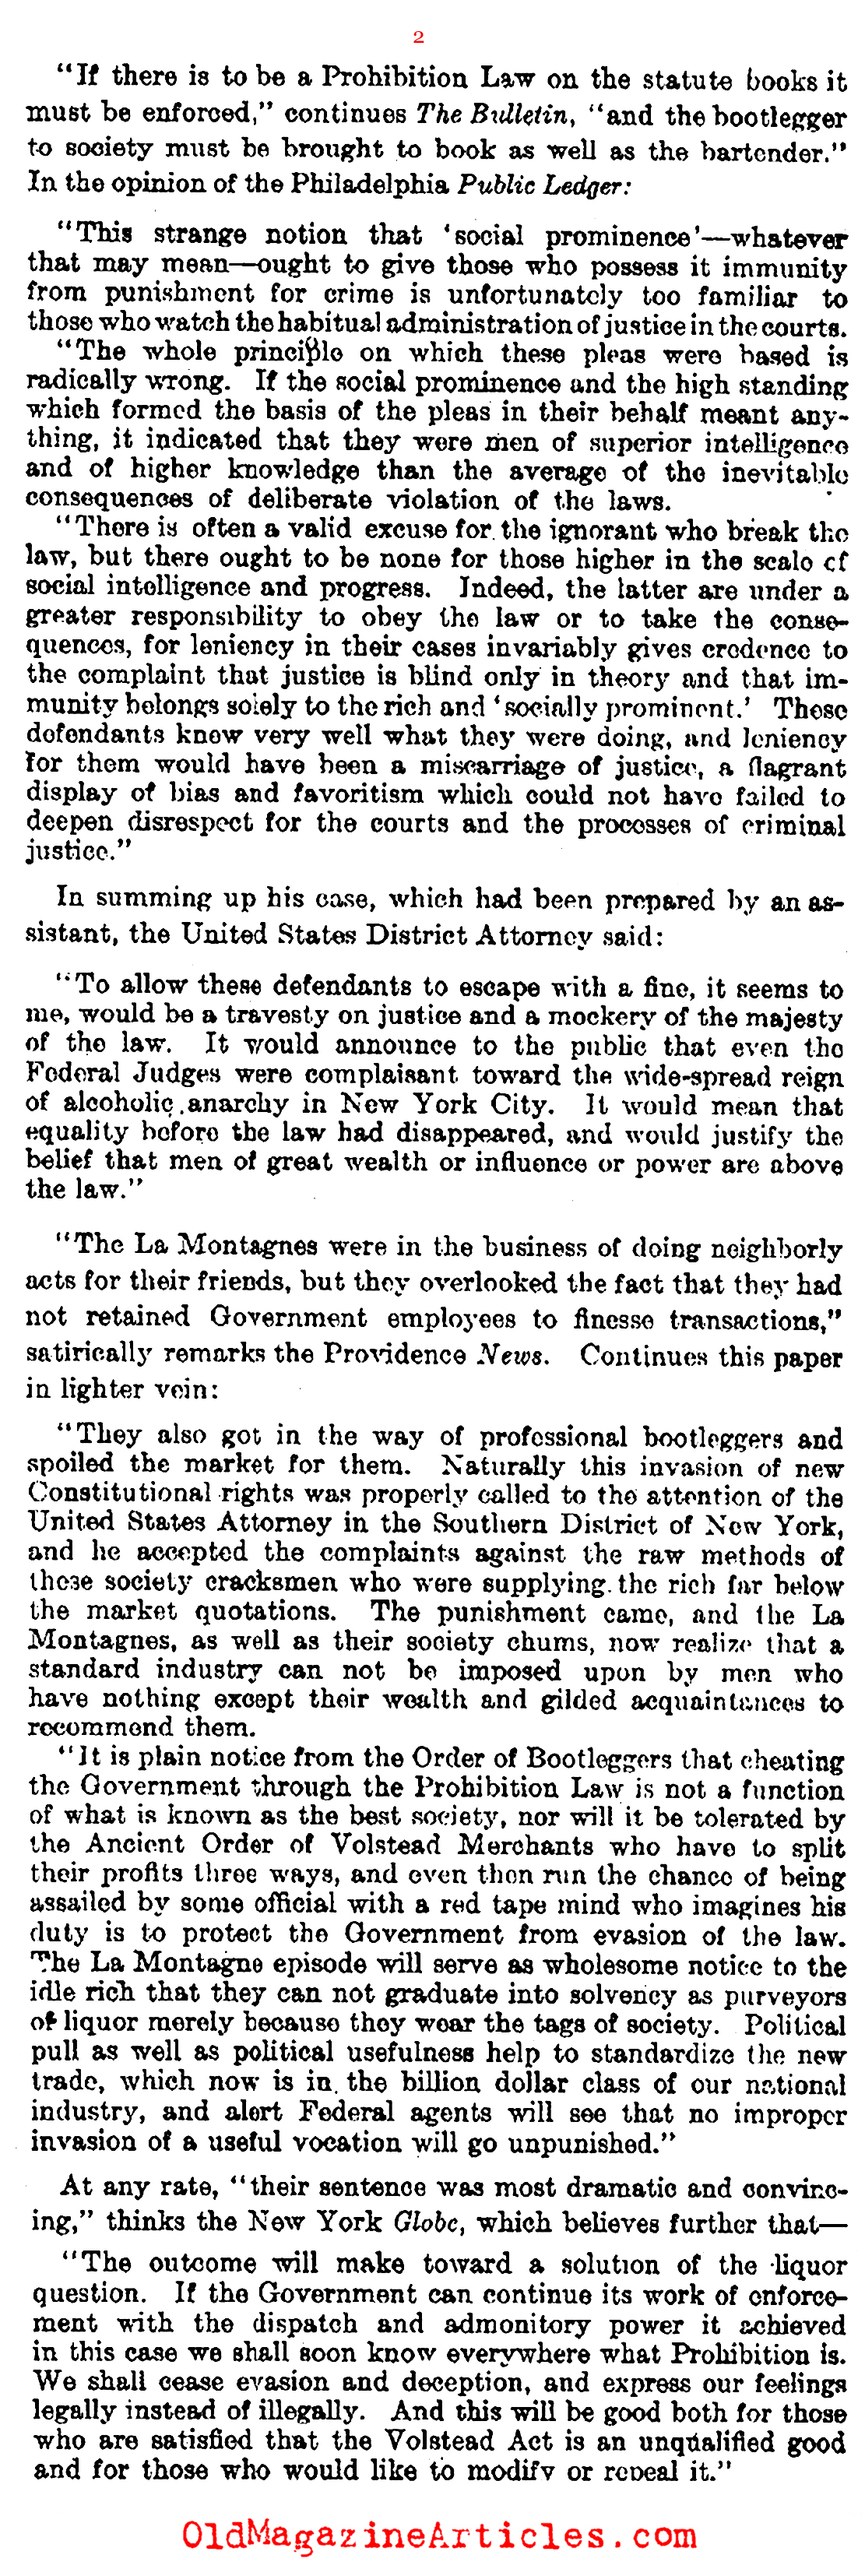 Upper-Class Bootleggers Arrested (Literary Digest, 1923)